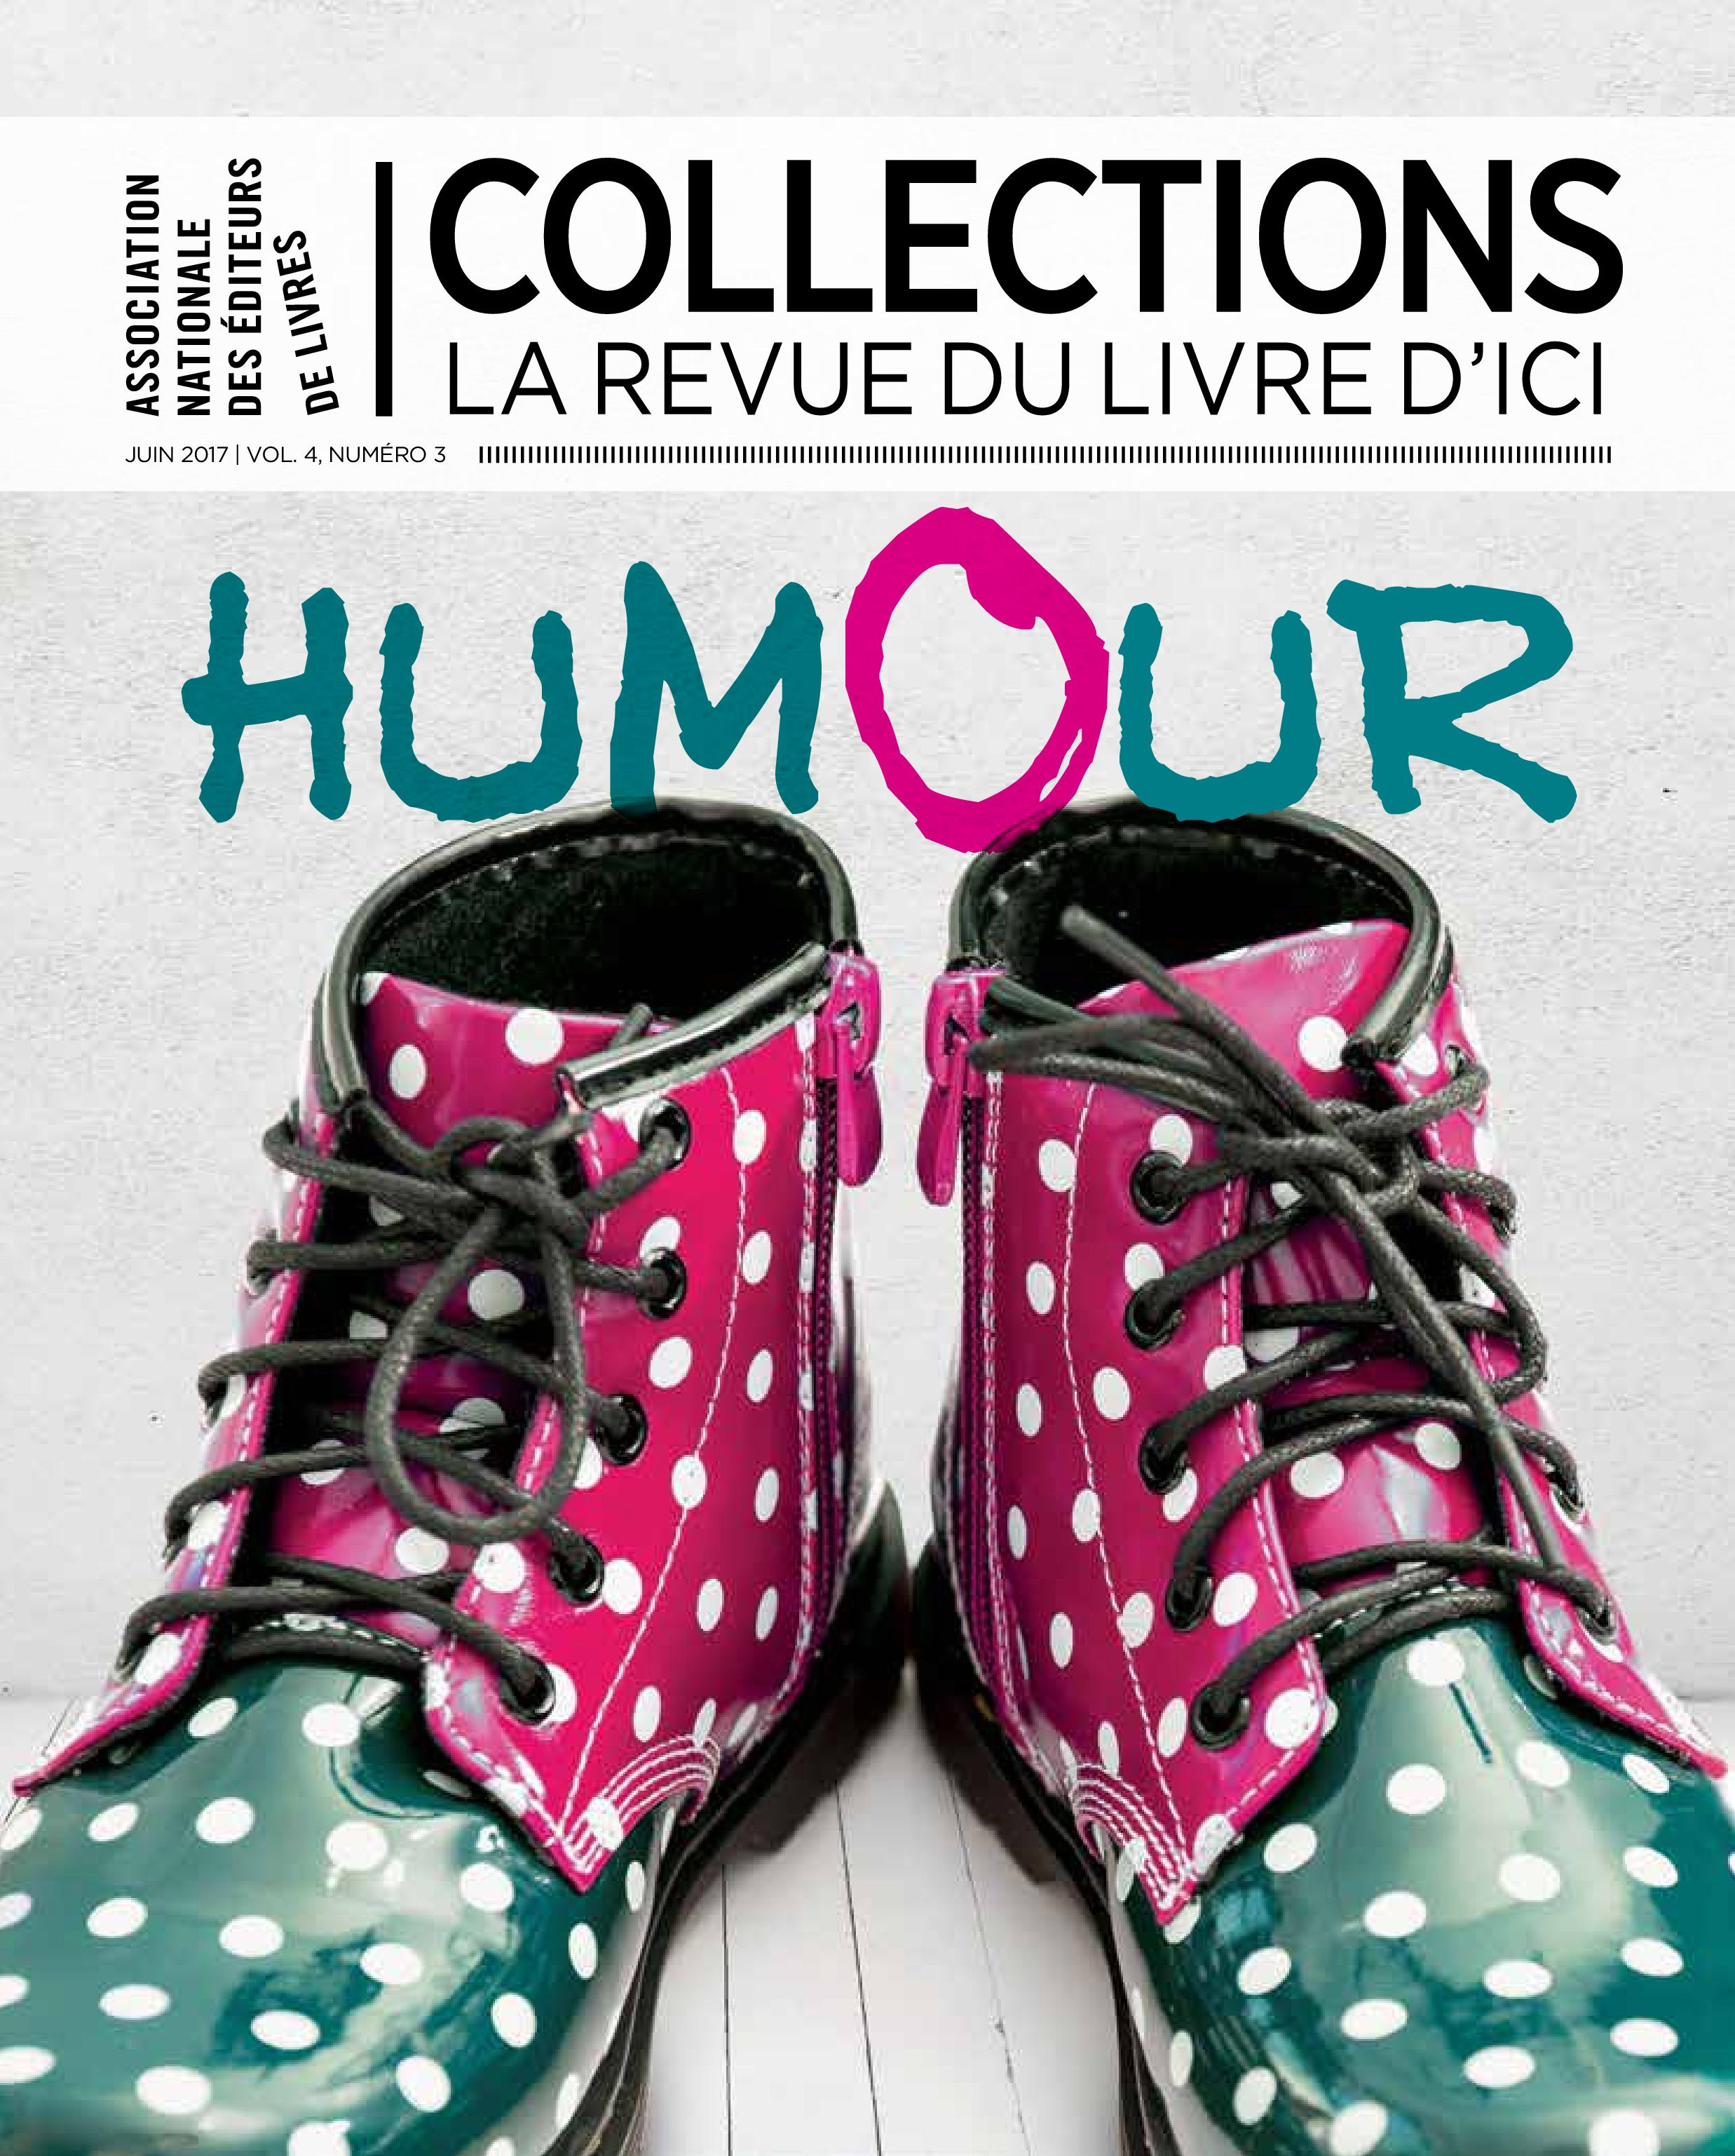 Collections Vol 4, No 3, Humour